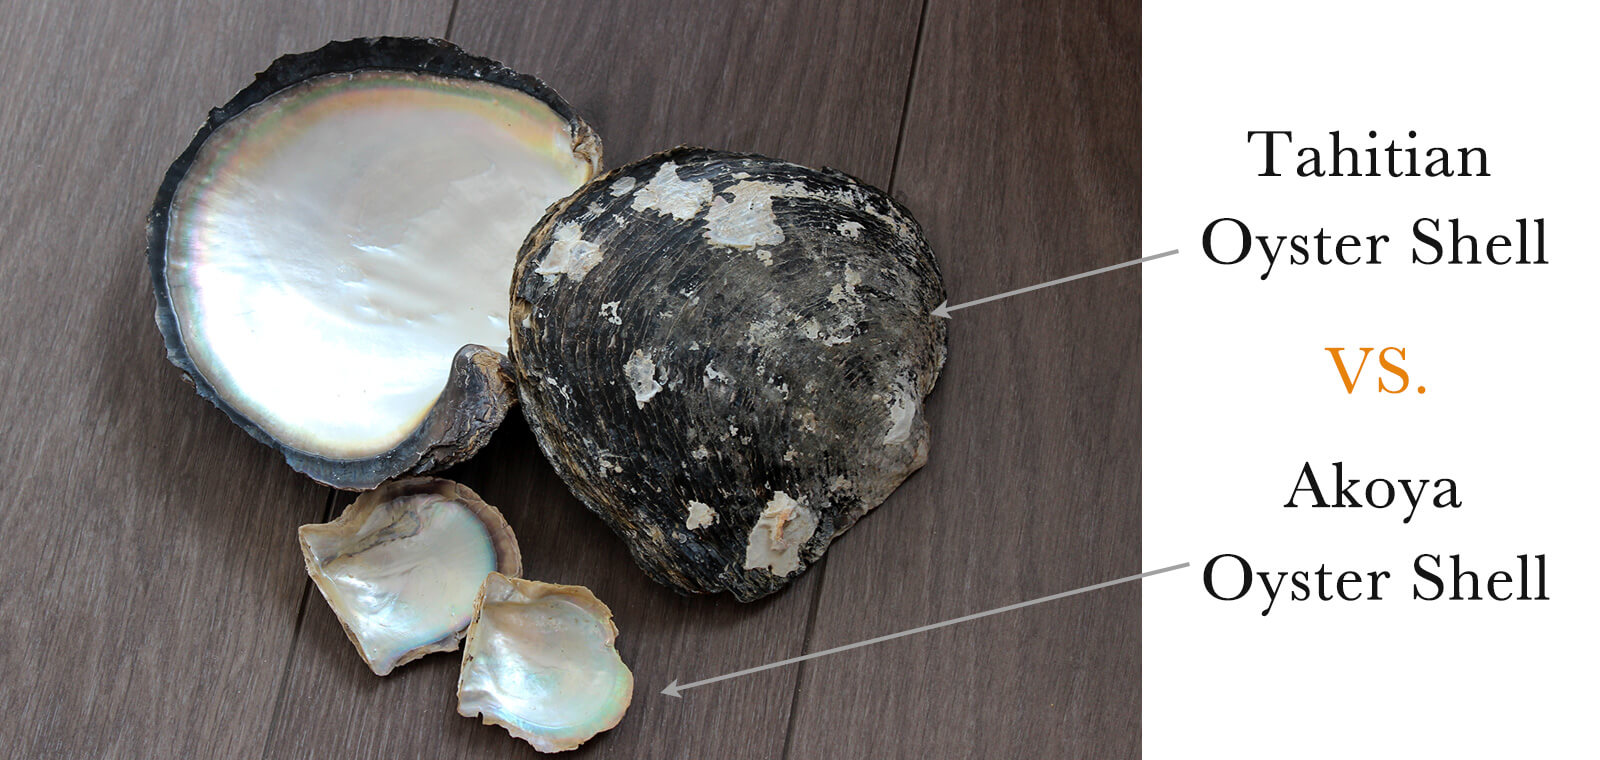 Oyster Shell Size Difference Akoya vs Tahitian Pearl